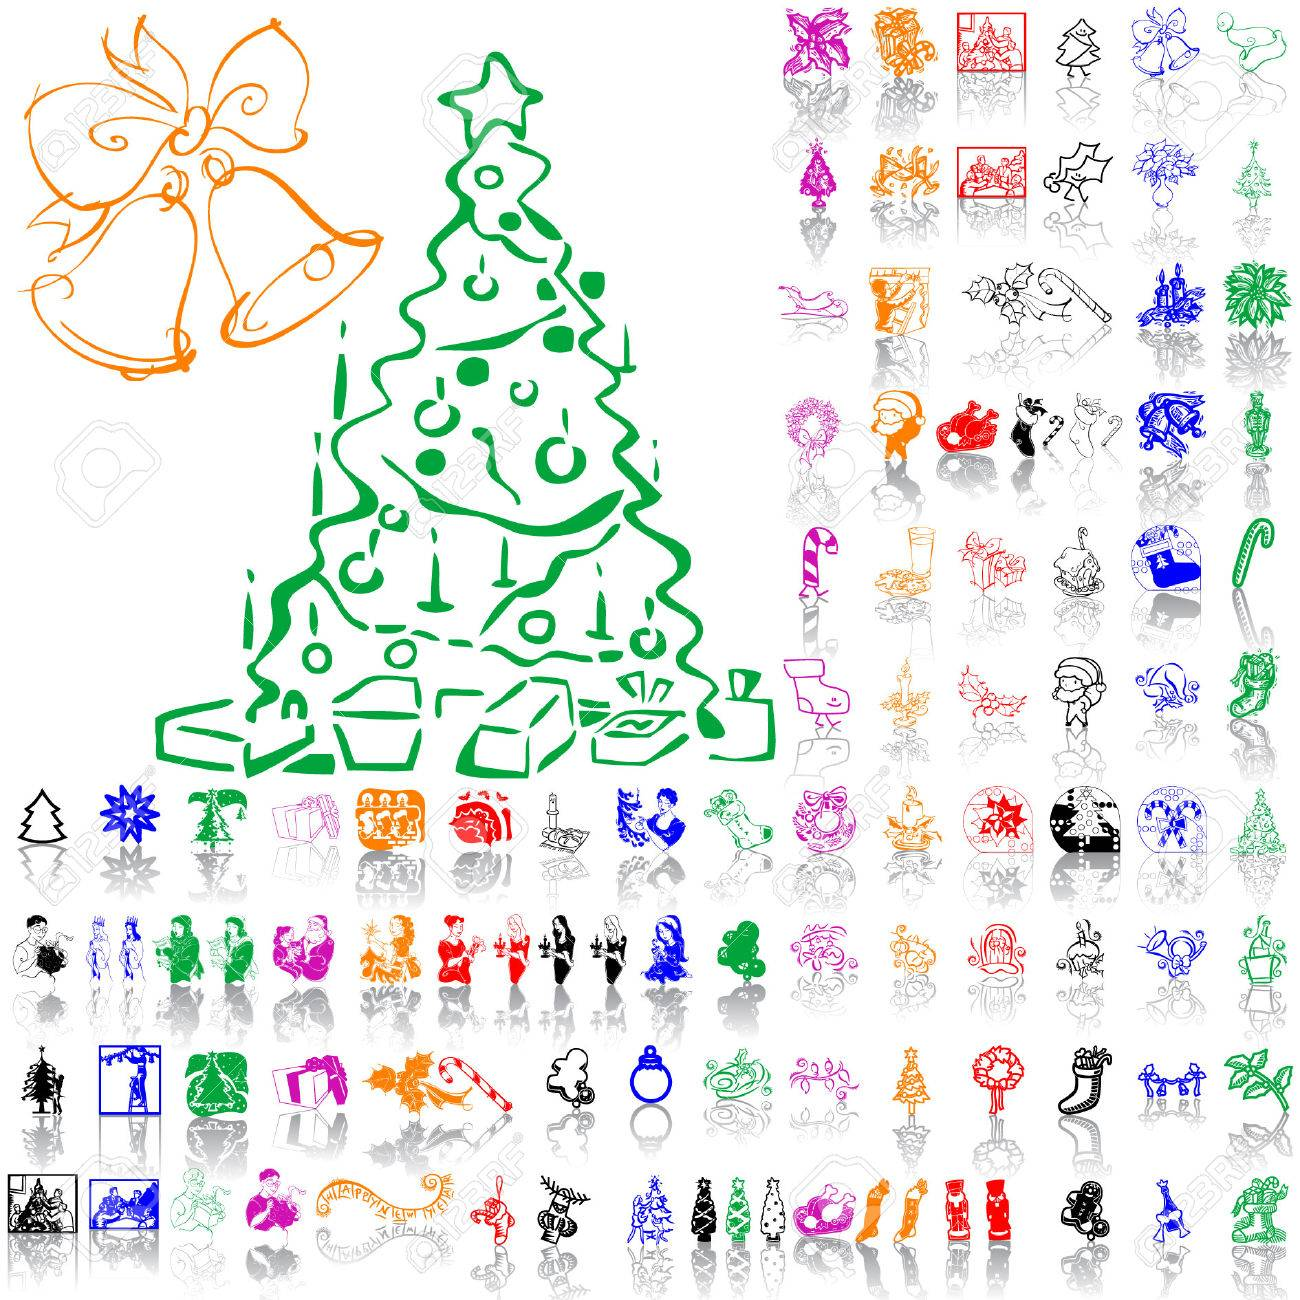 Christmas Sketches.Set Of Christmas Sketches Part 8 Isolated Groups And Layers